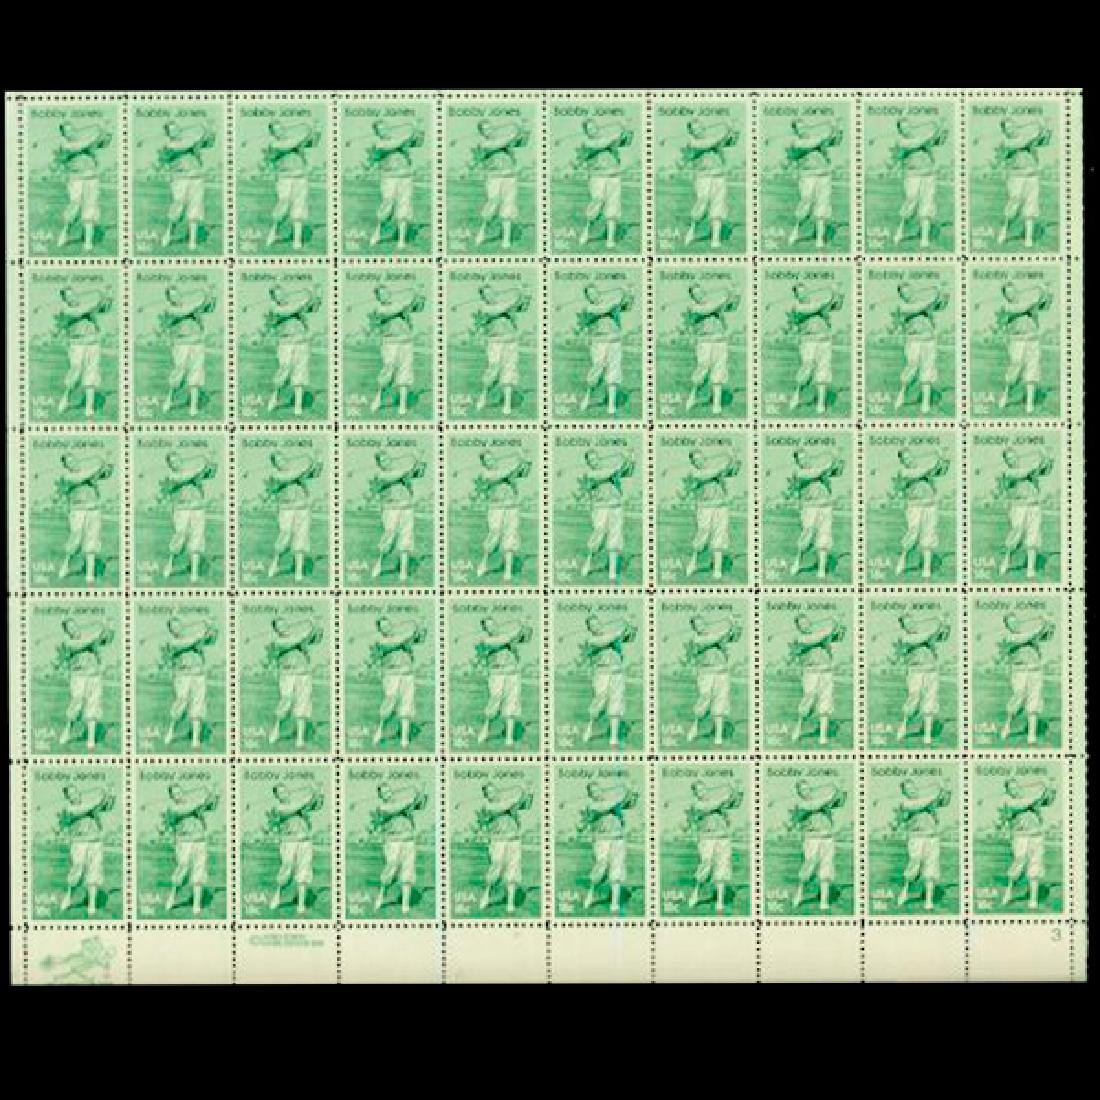 1981 US Sheet 18c Bobby Jones Stamps MNH Error RARE